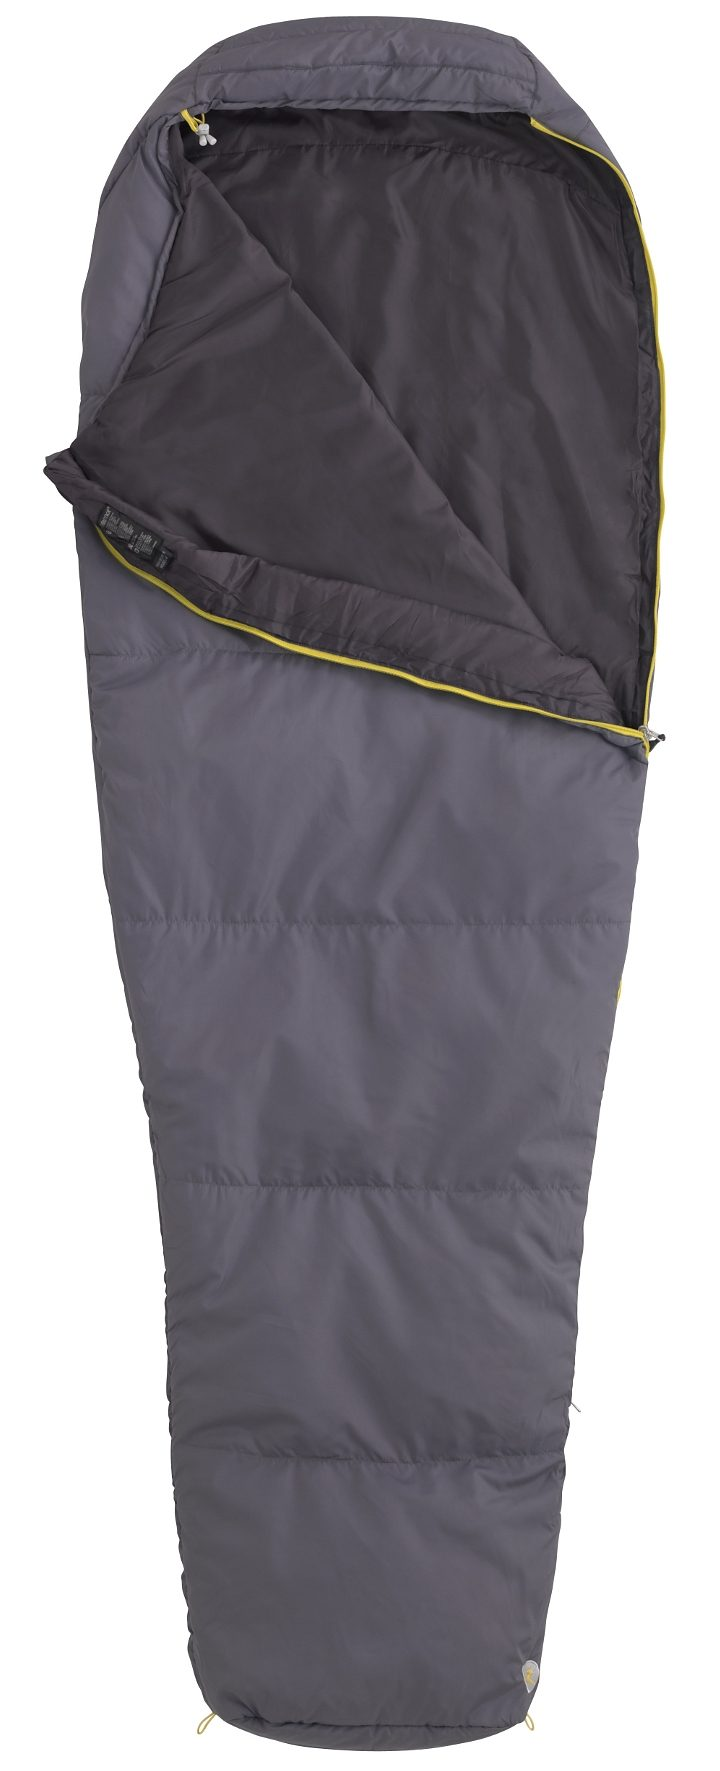 Marmot Schlafsack »NanoWave 55 Sleeping Bag Long«